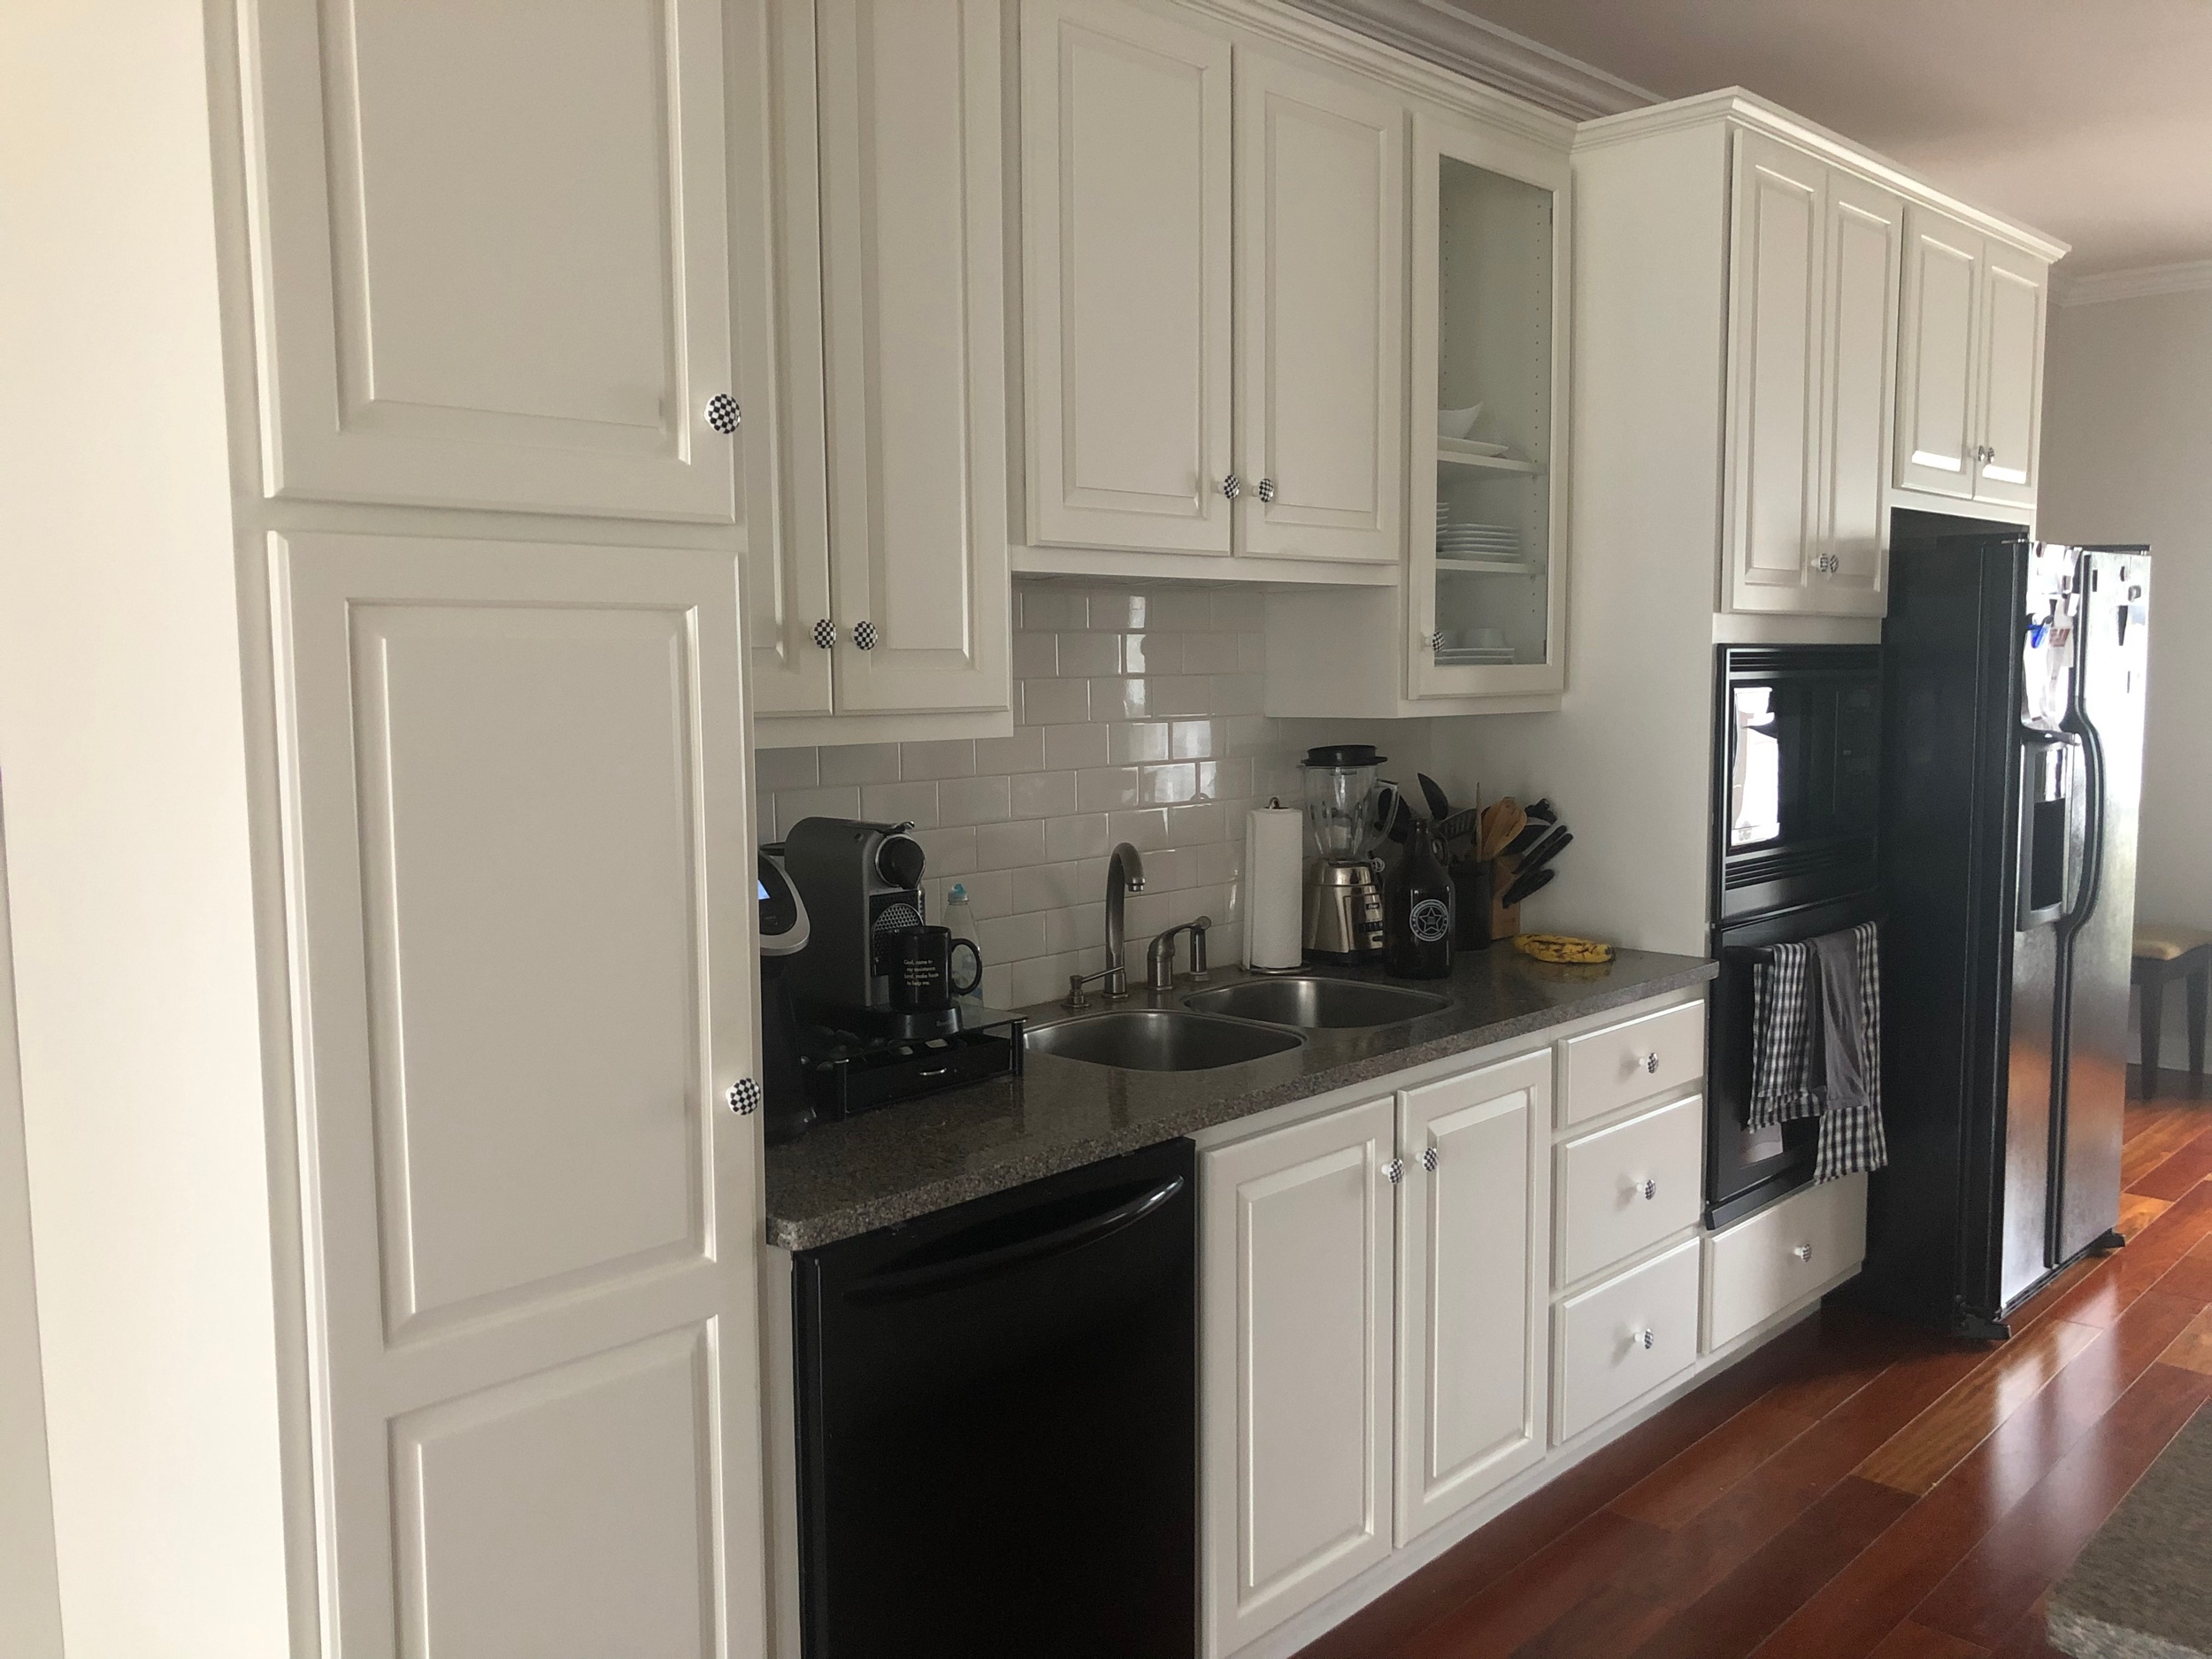 The open concept of this kitchen worked well in this downtown condo. A total remodel might have been overkill but painting gave the kitchen the update they were looking for.